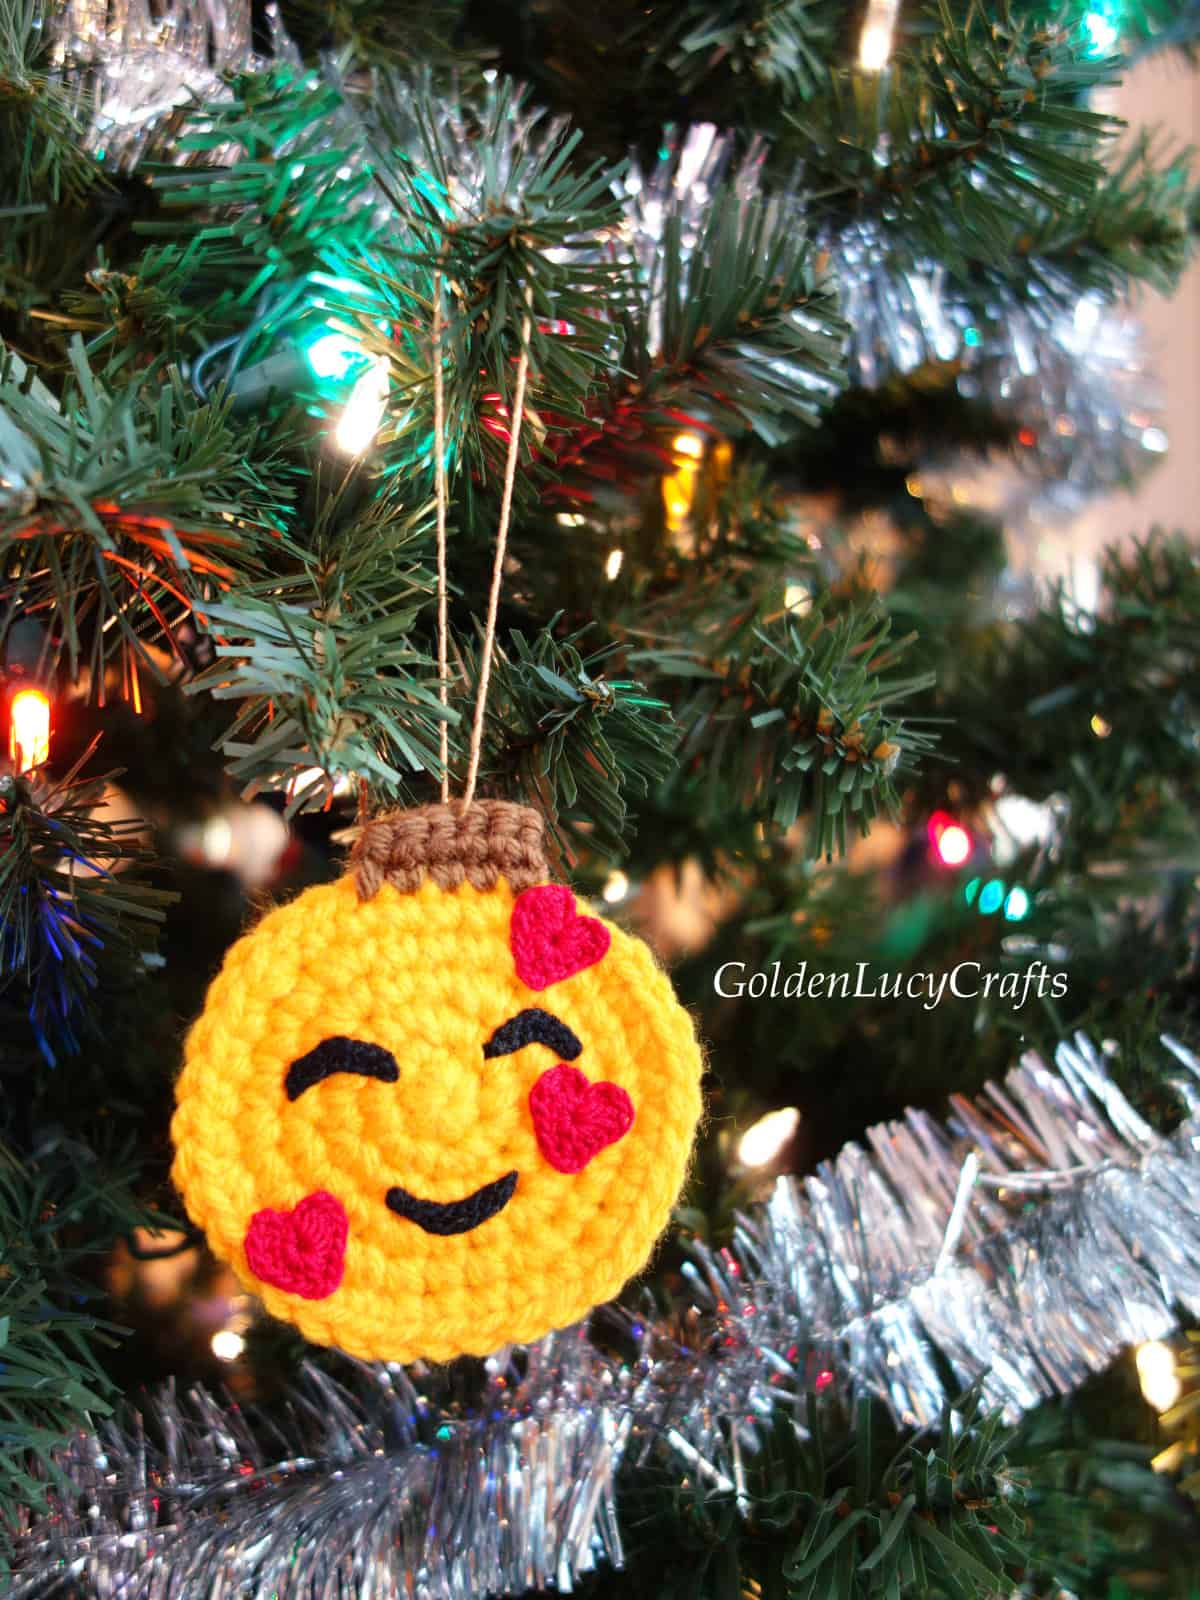 Crochet smiling face emoji ornament hanging on the Christmas tree.